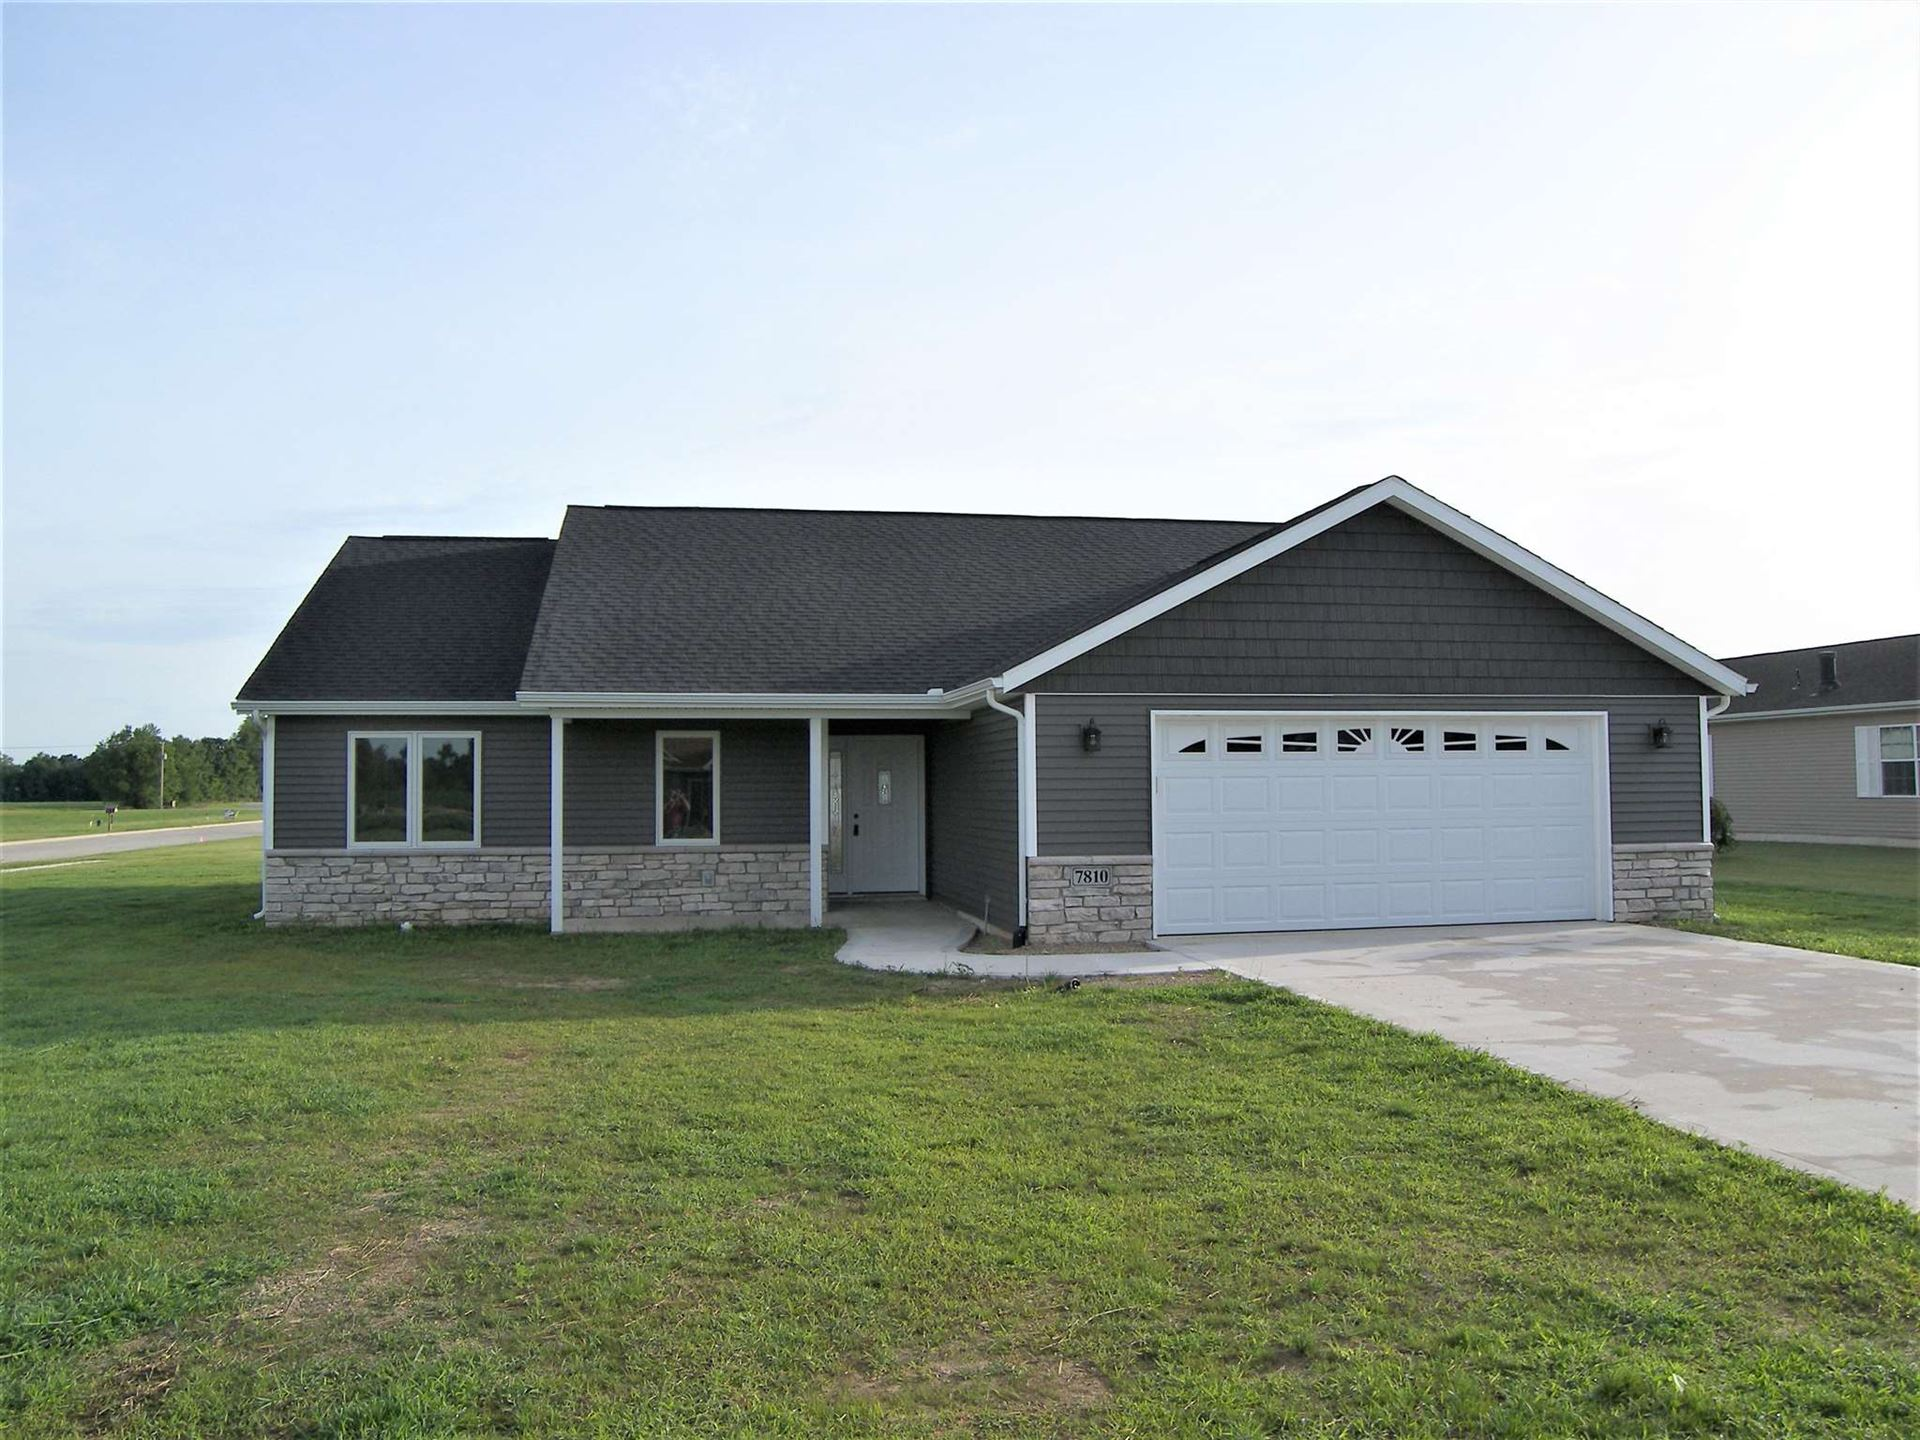 Photo of 7810 E Goodison Road, North Webster, IN 46555 (MLS # 202014795)